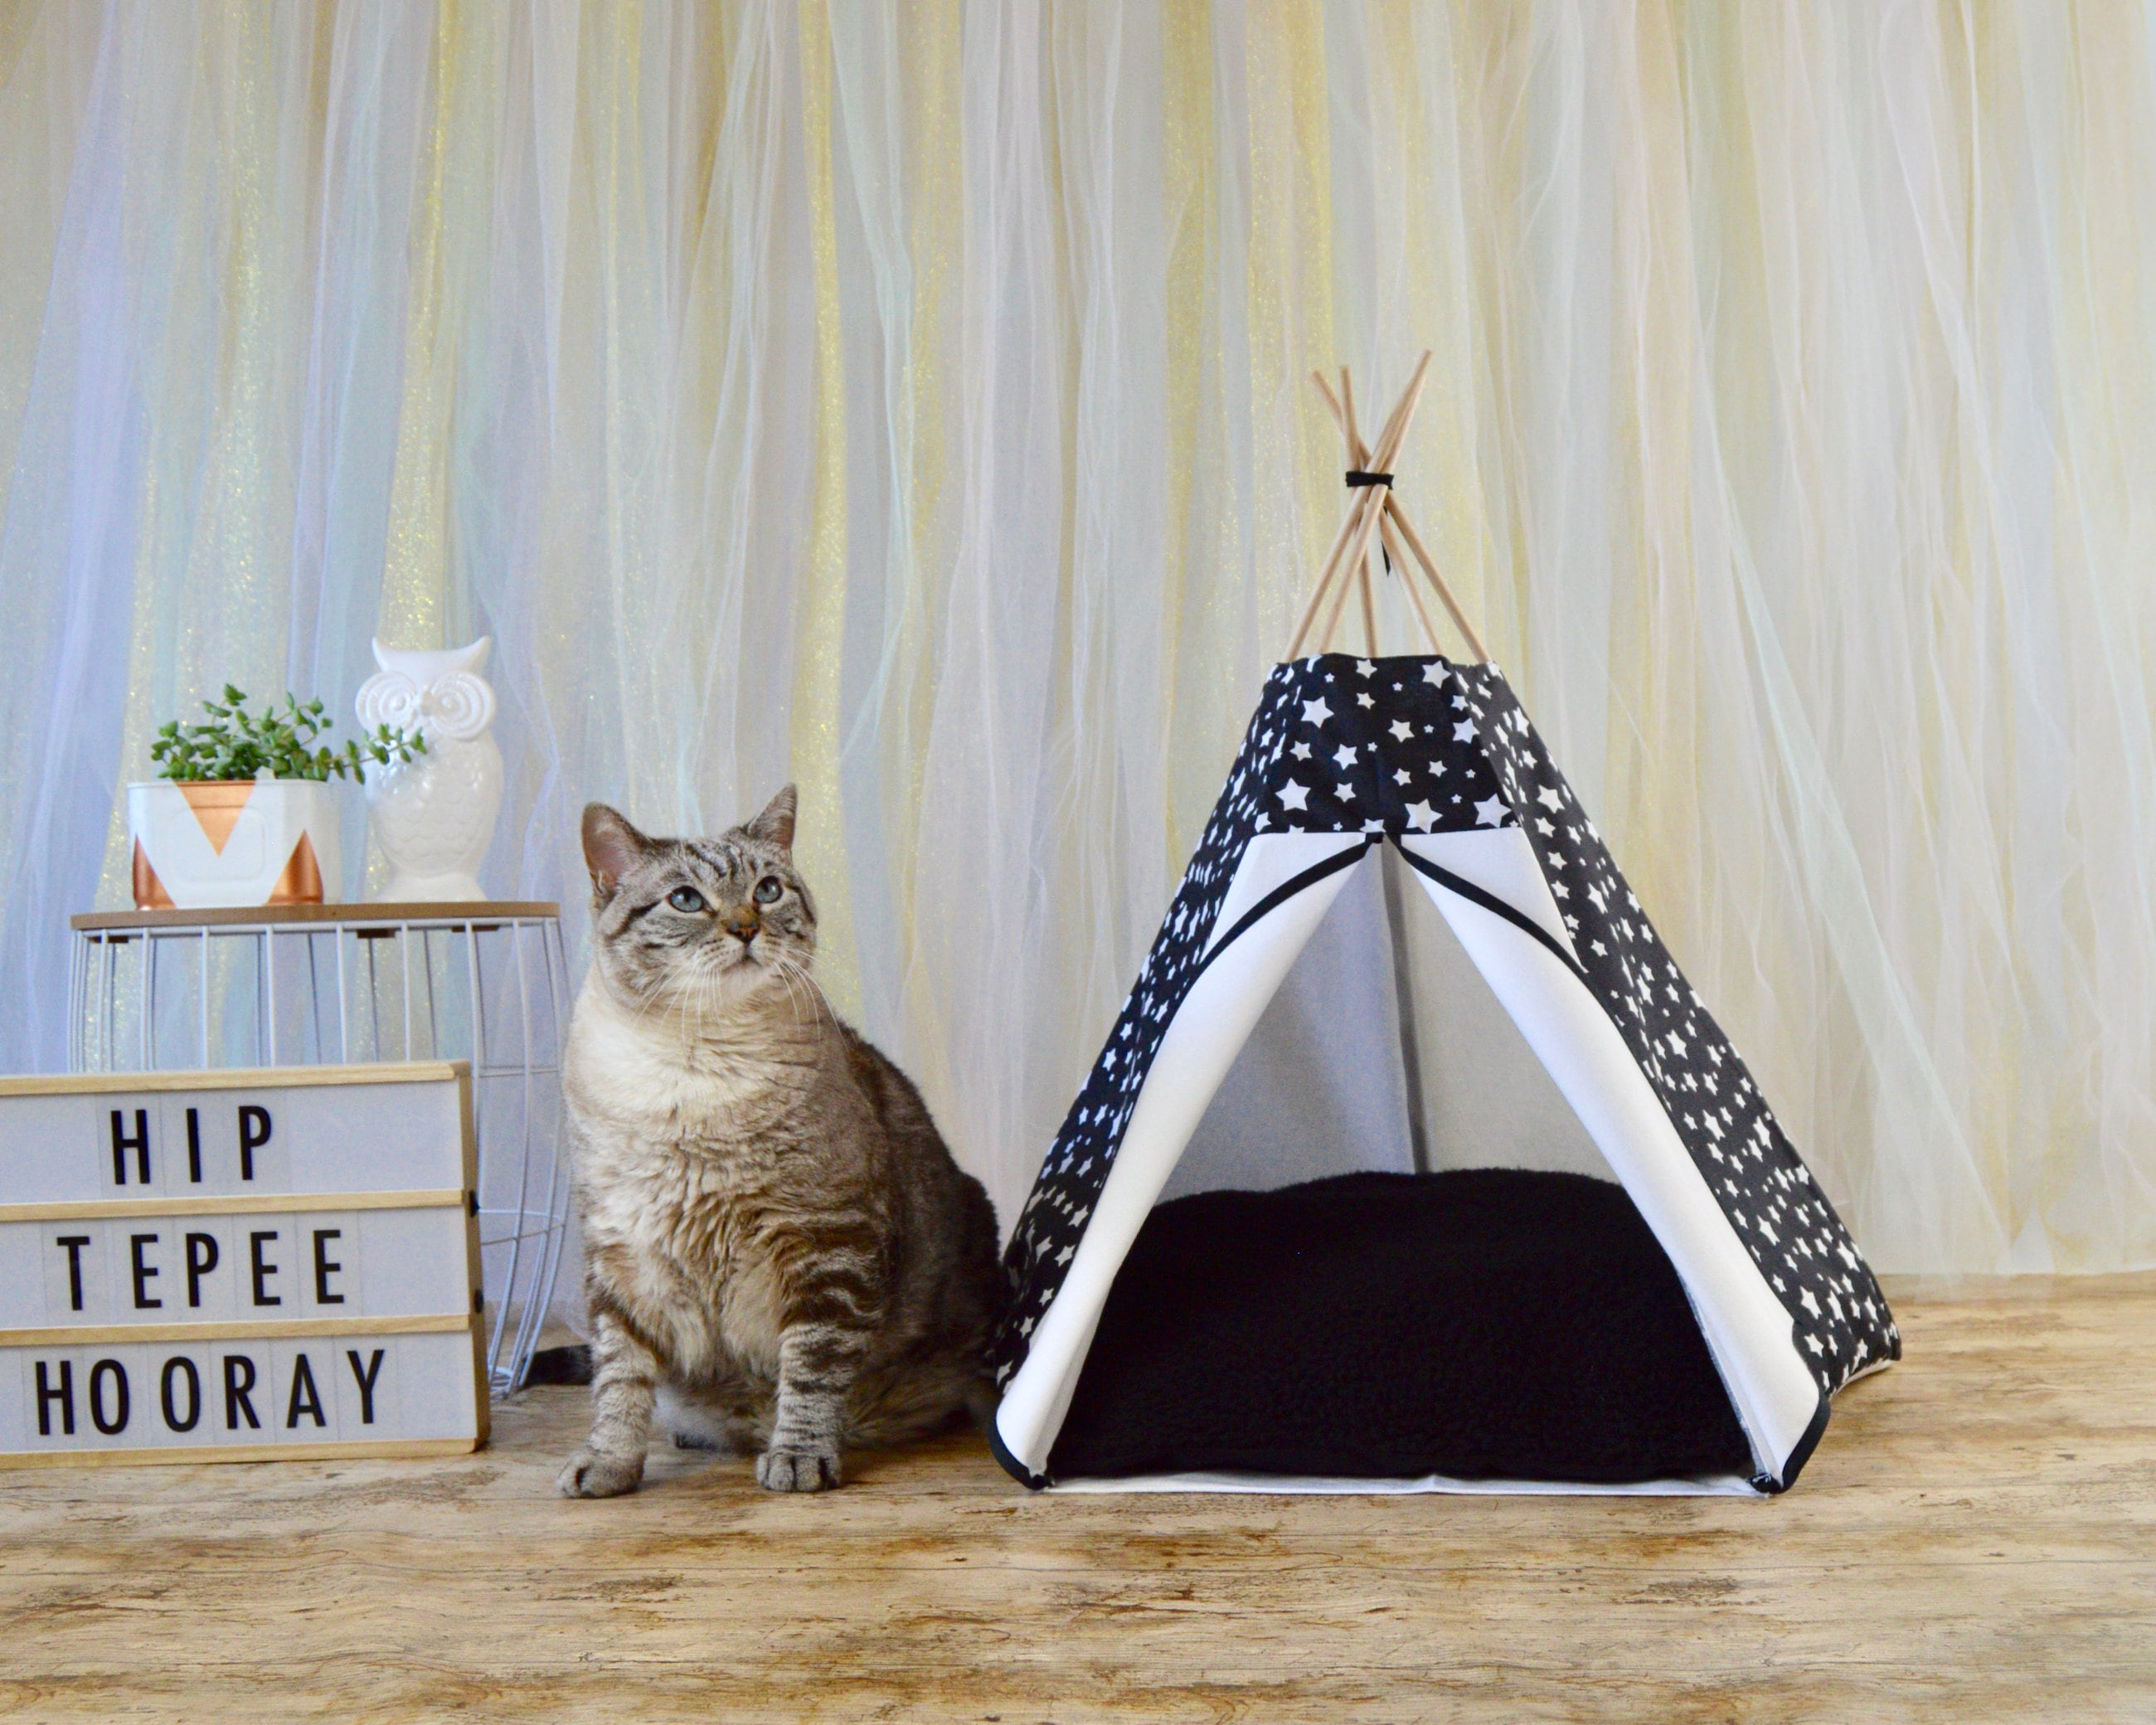 tipi chat tipi pour chat chat teepee tipi chien tente. Black Bedroom Furniture Sets. Home Design Ideas